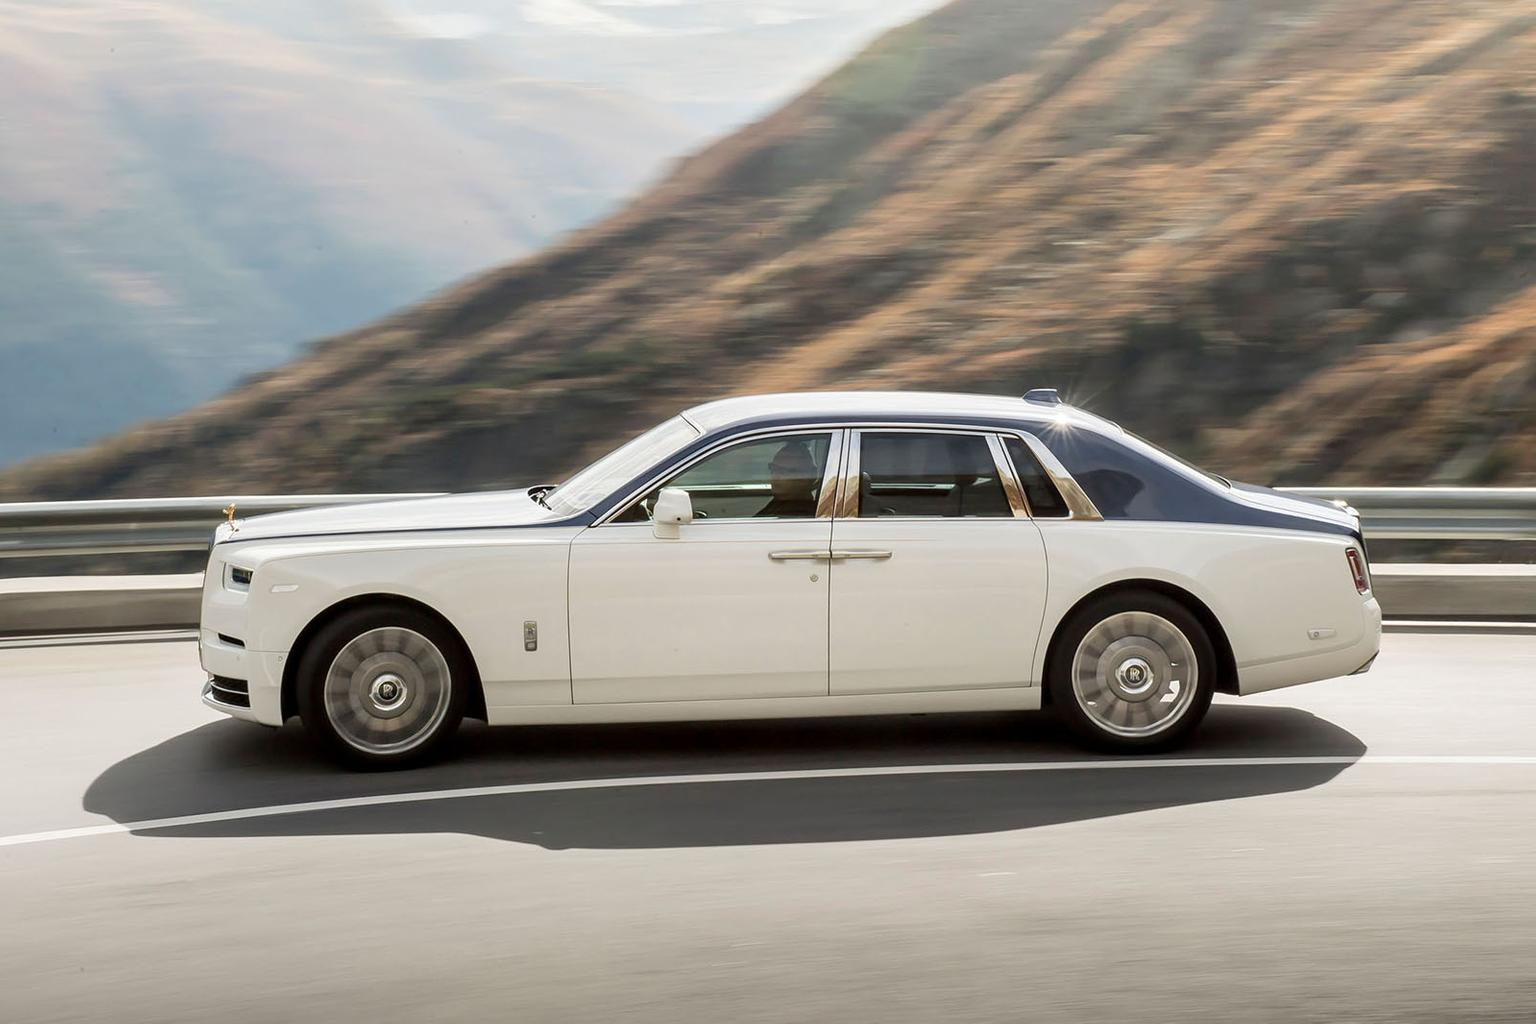 2017 Rolls-Royce Phantom review - price, specs and release date